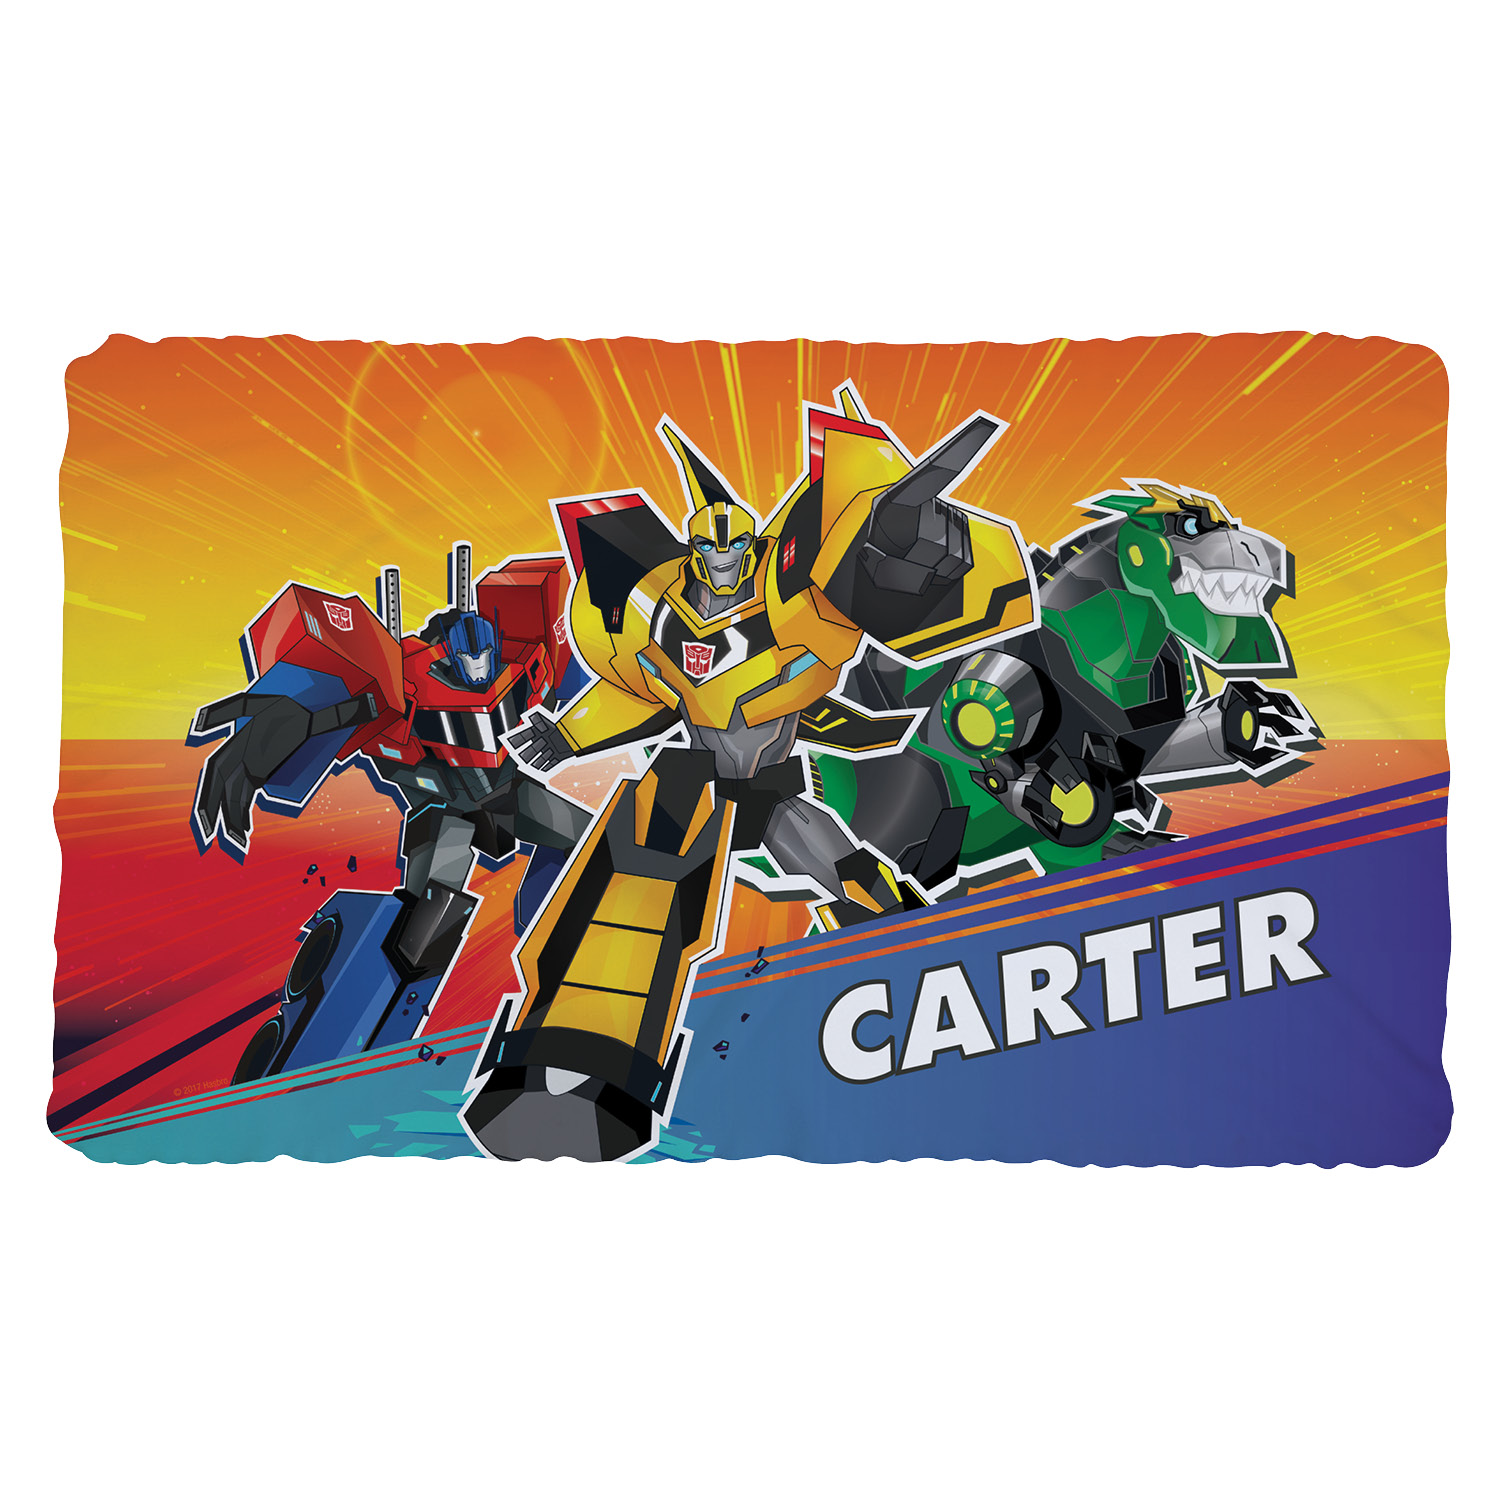 Personalized Kids Fuzzy Blanket - Transformers Robots in Disguise